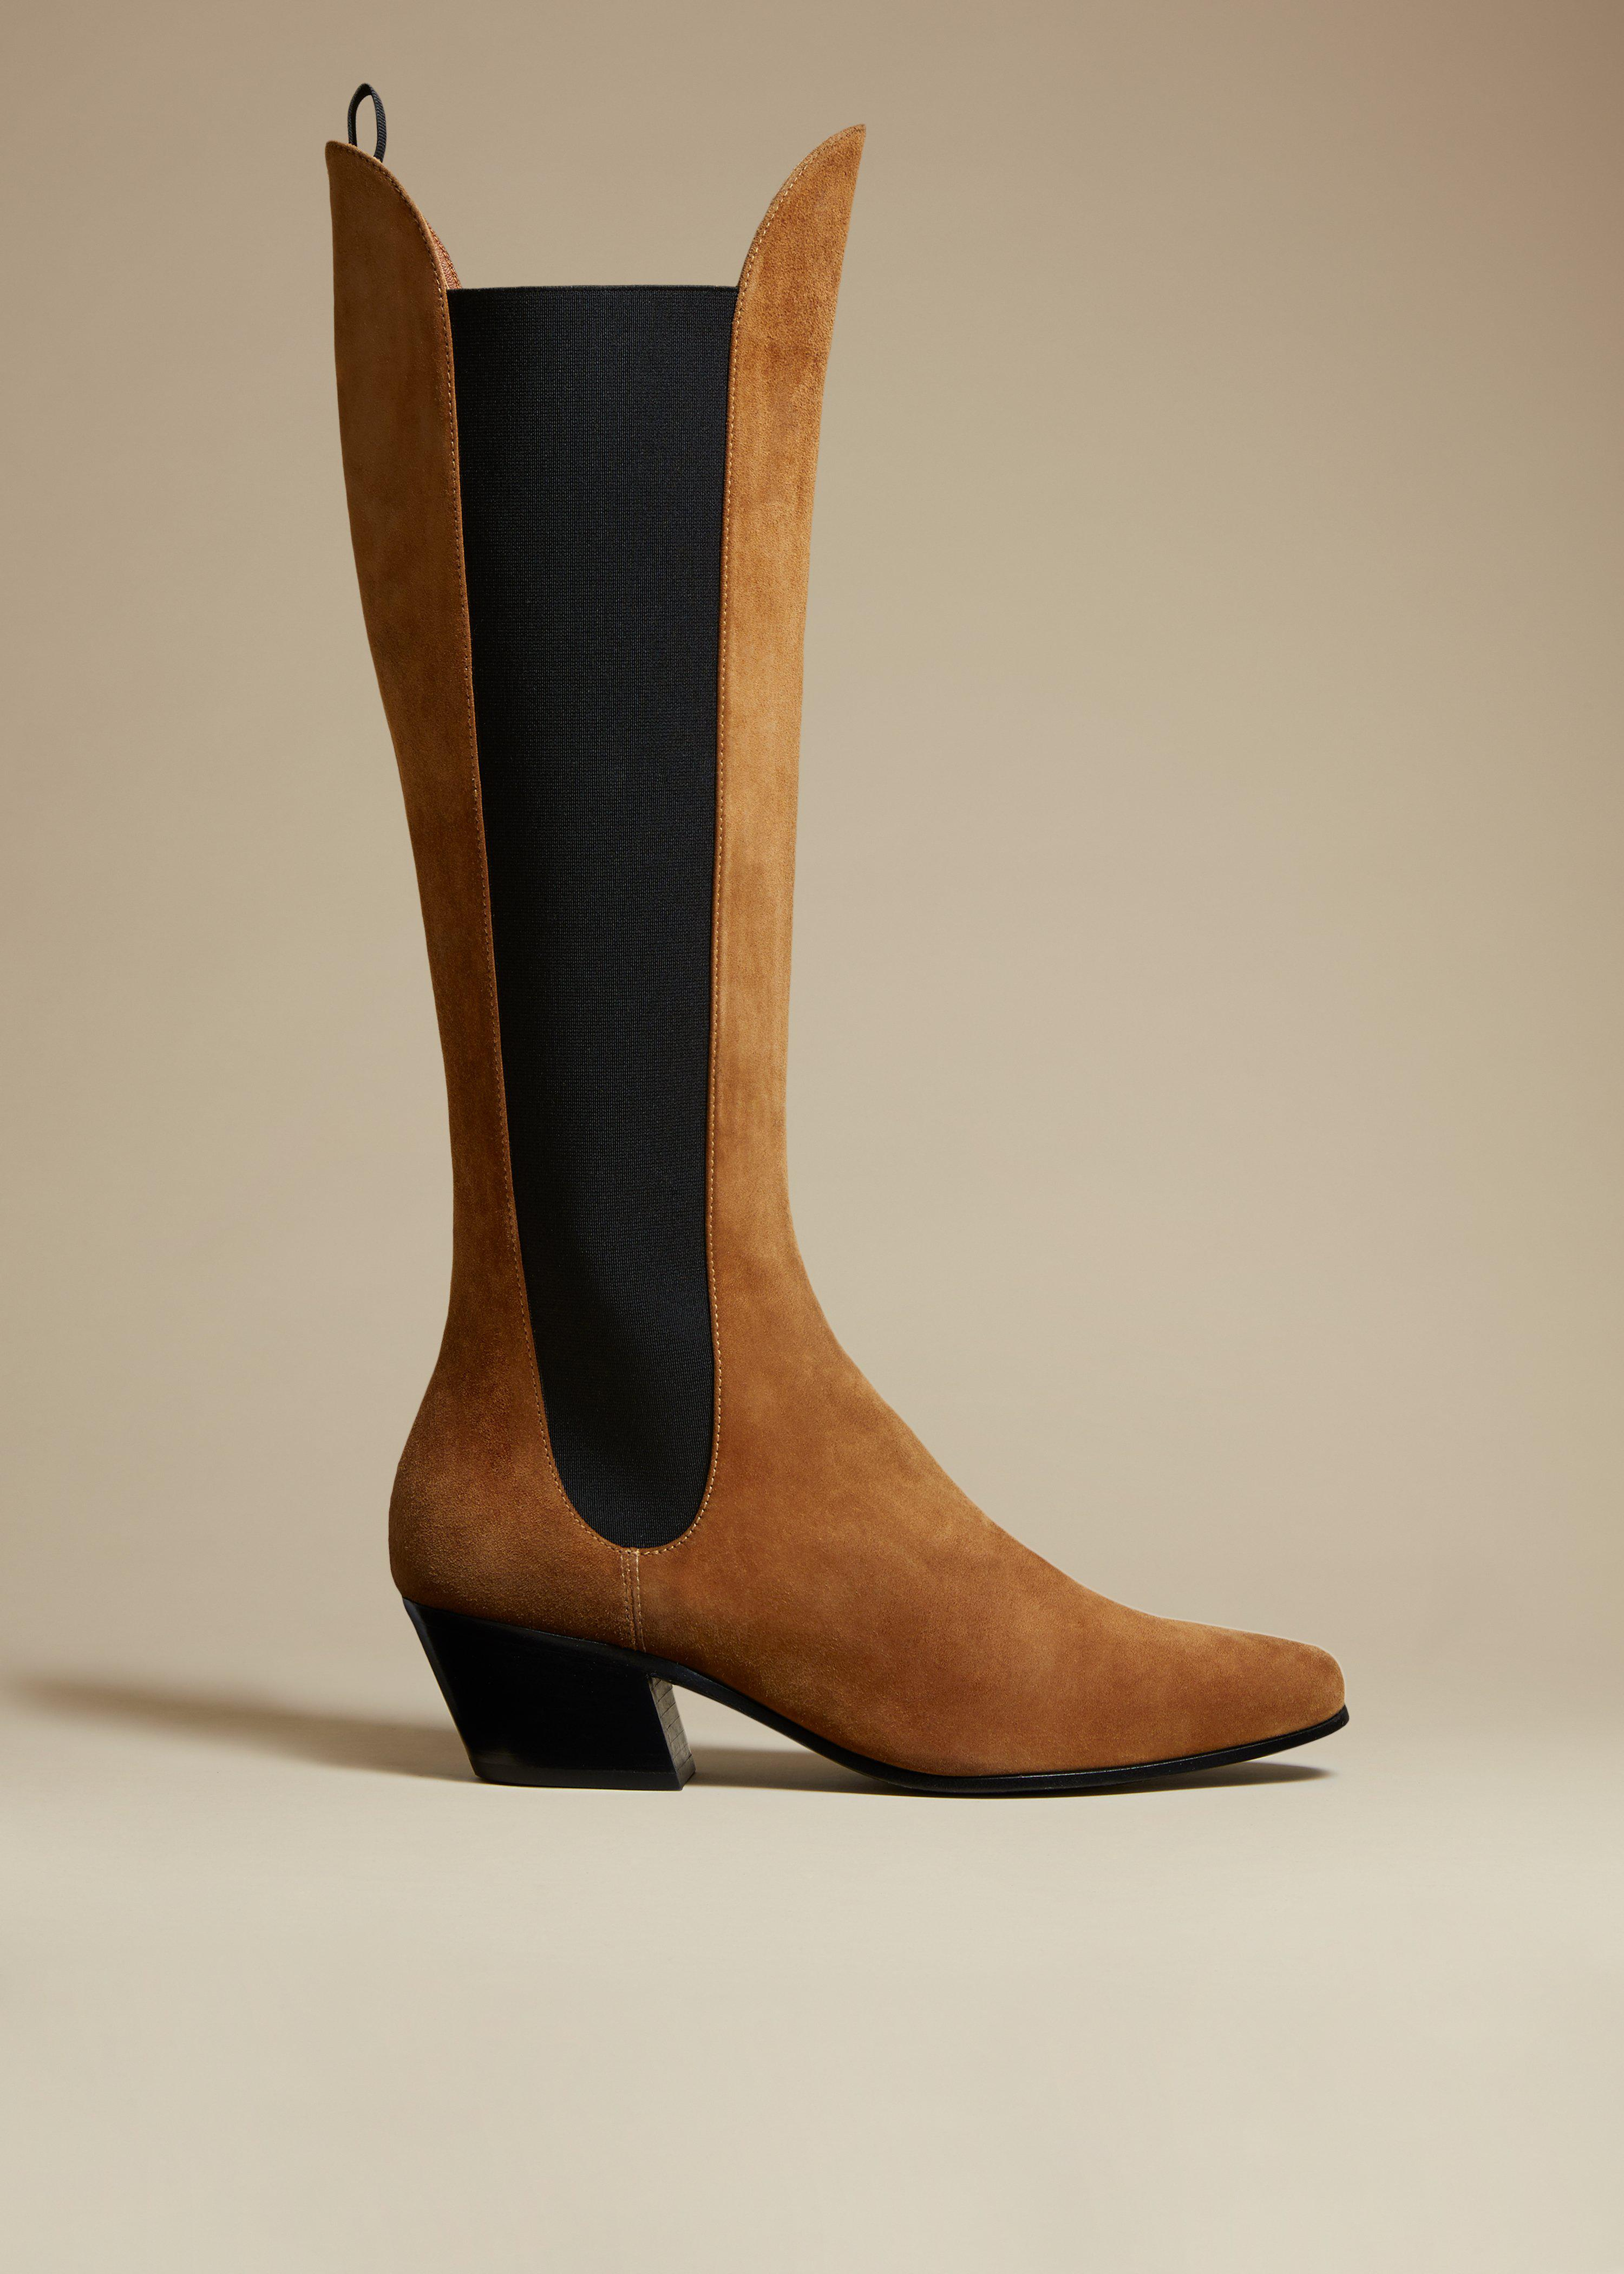 The Chester Boot in Caramel Suede